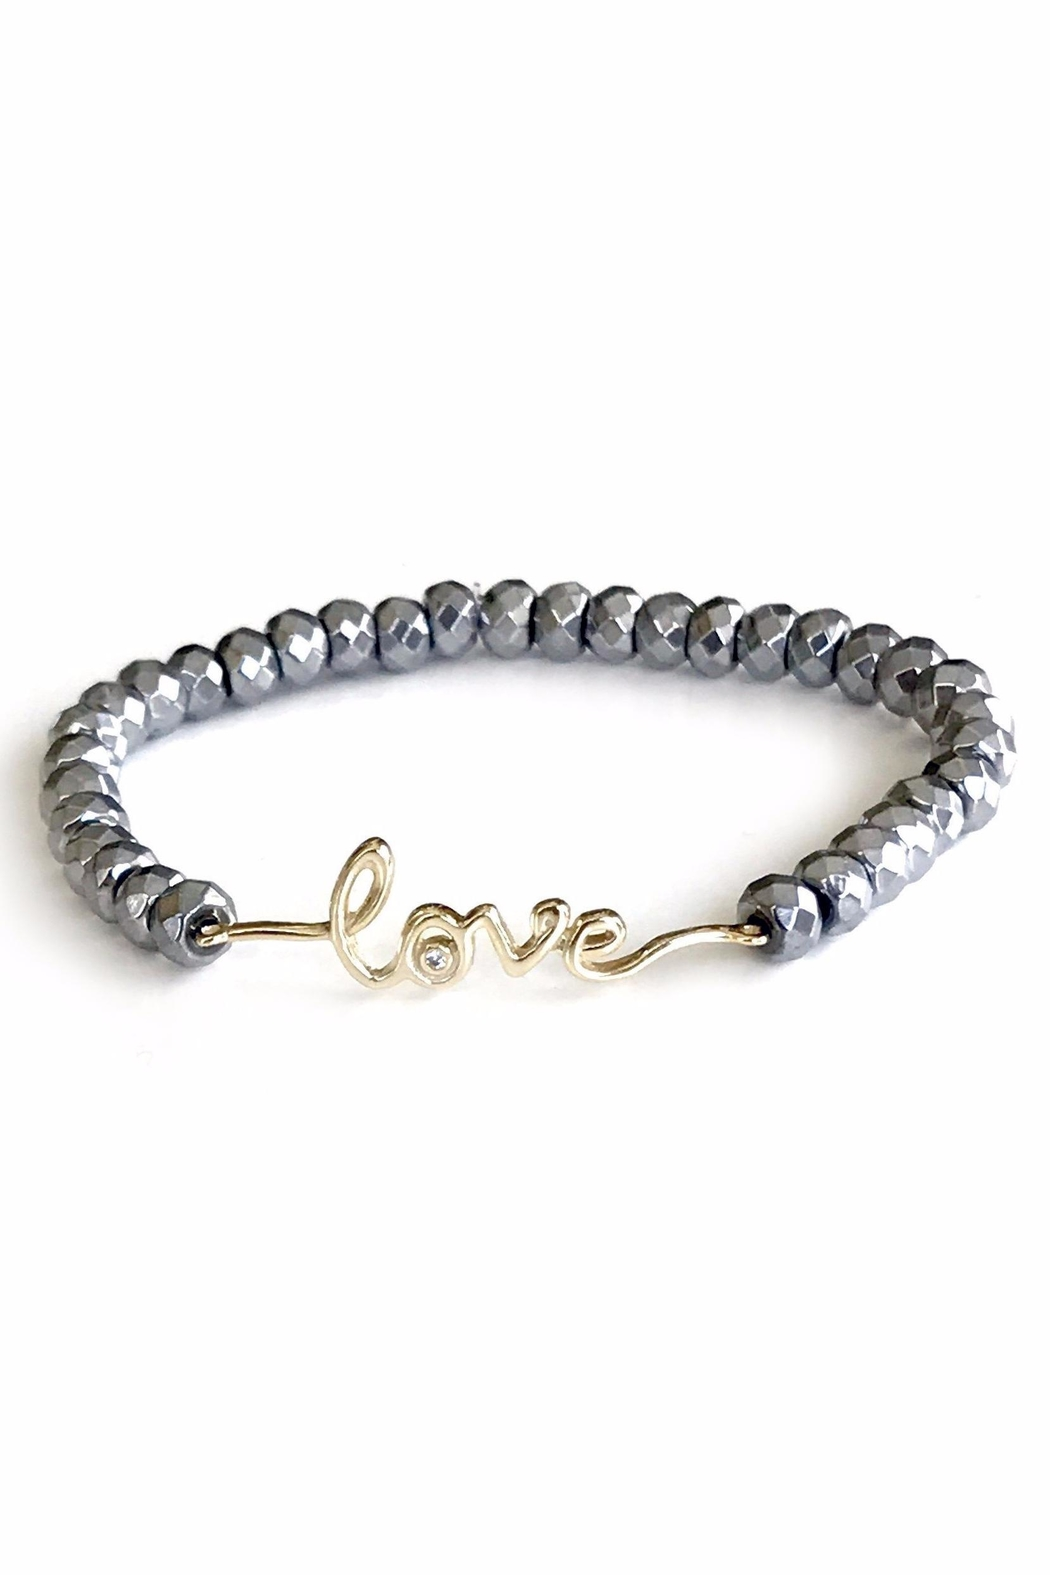 Sahira Jewelry Designs Love Hematite Bracelet - Main Image